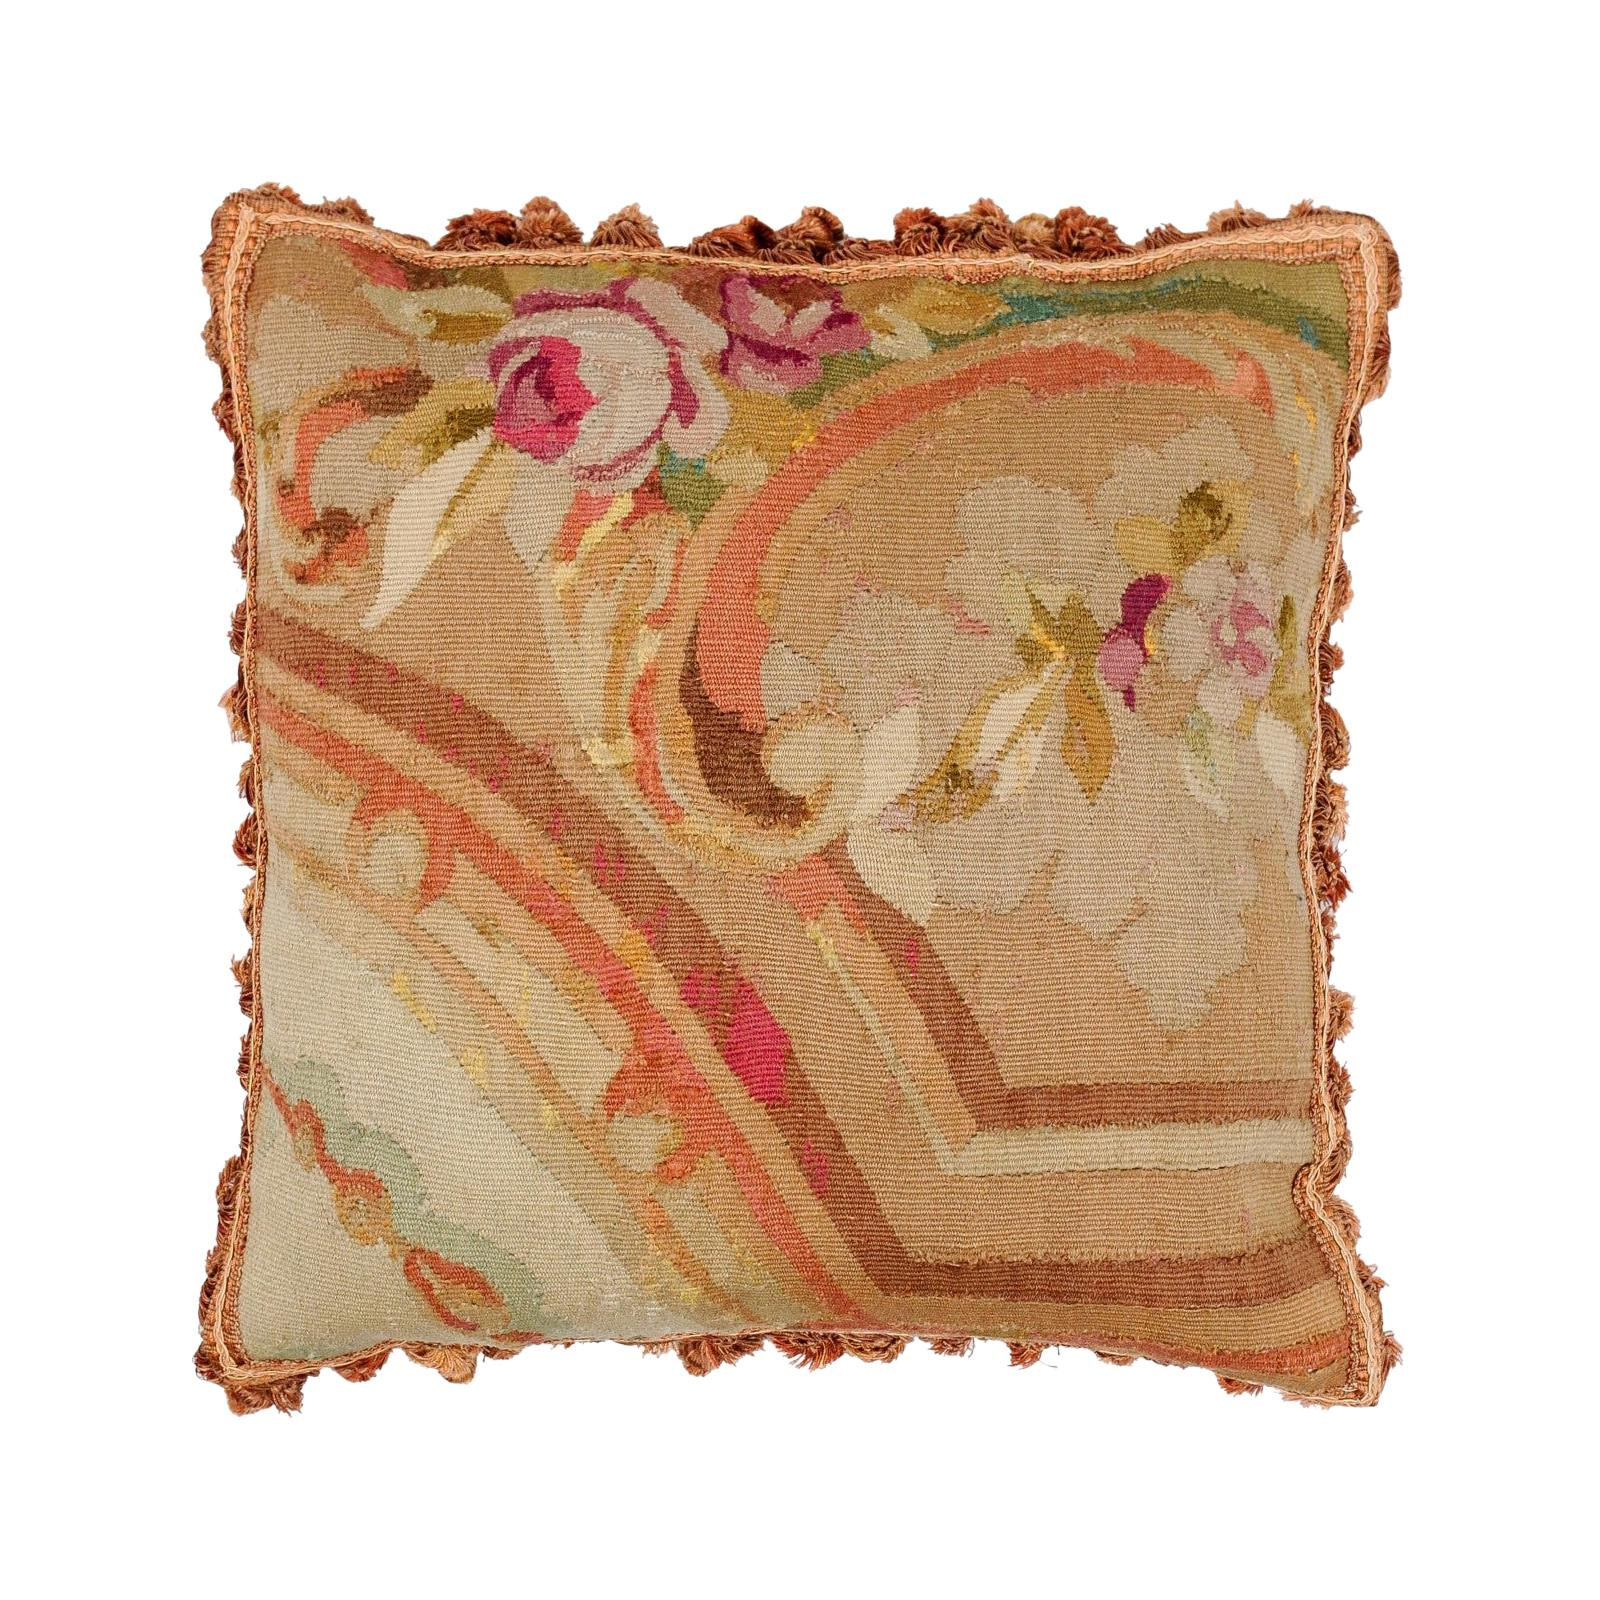 19th Century French Aubusson Woven Tapestry Pillow with Roses Decor and Tassels